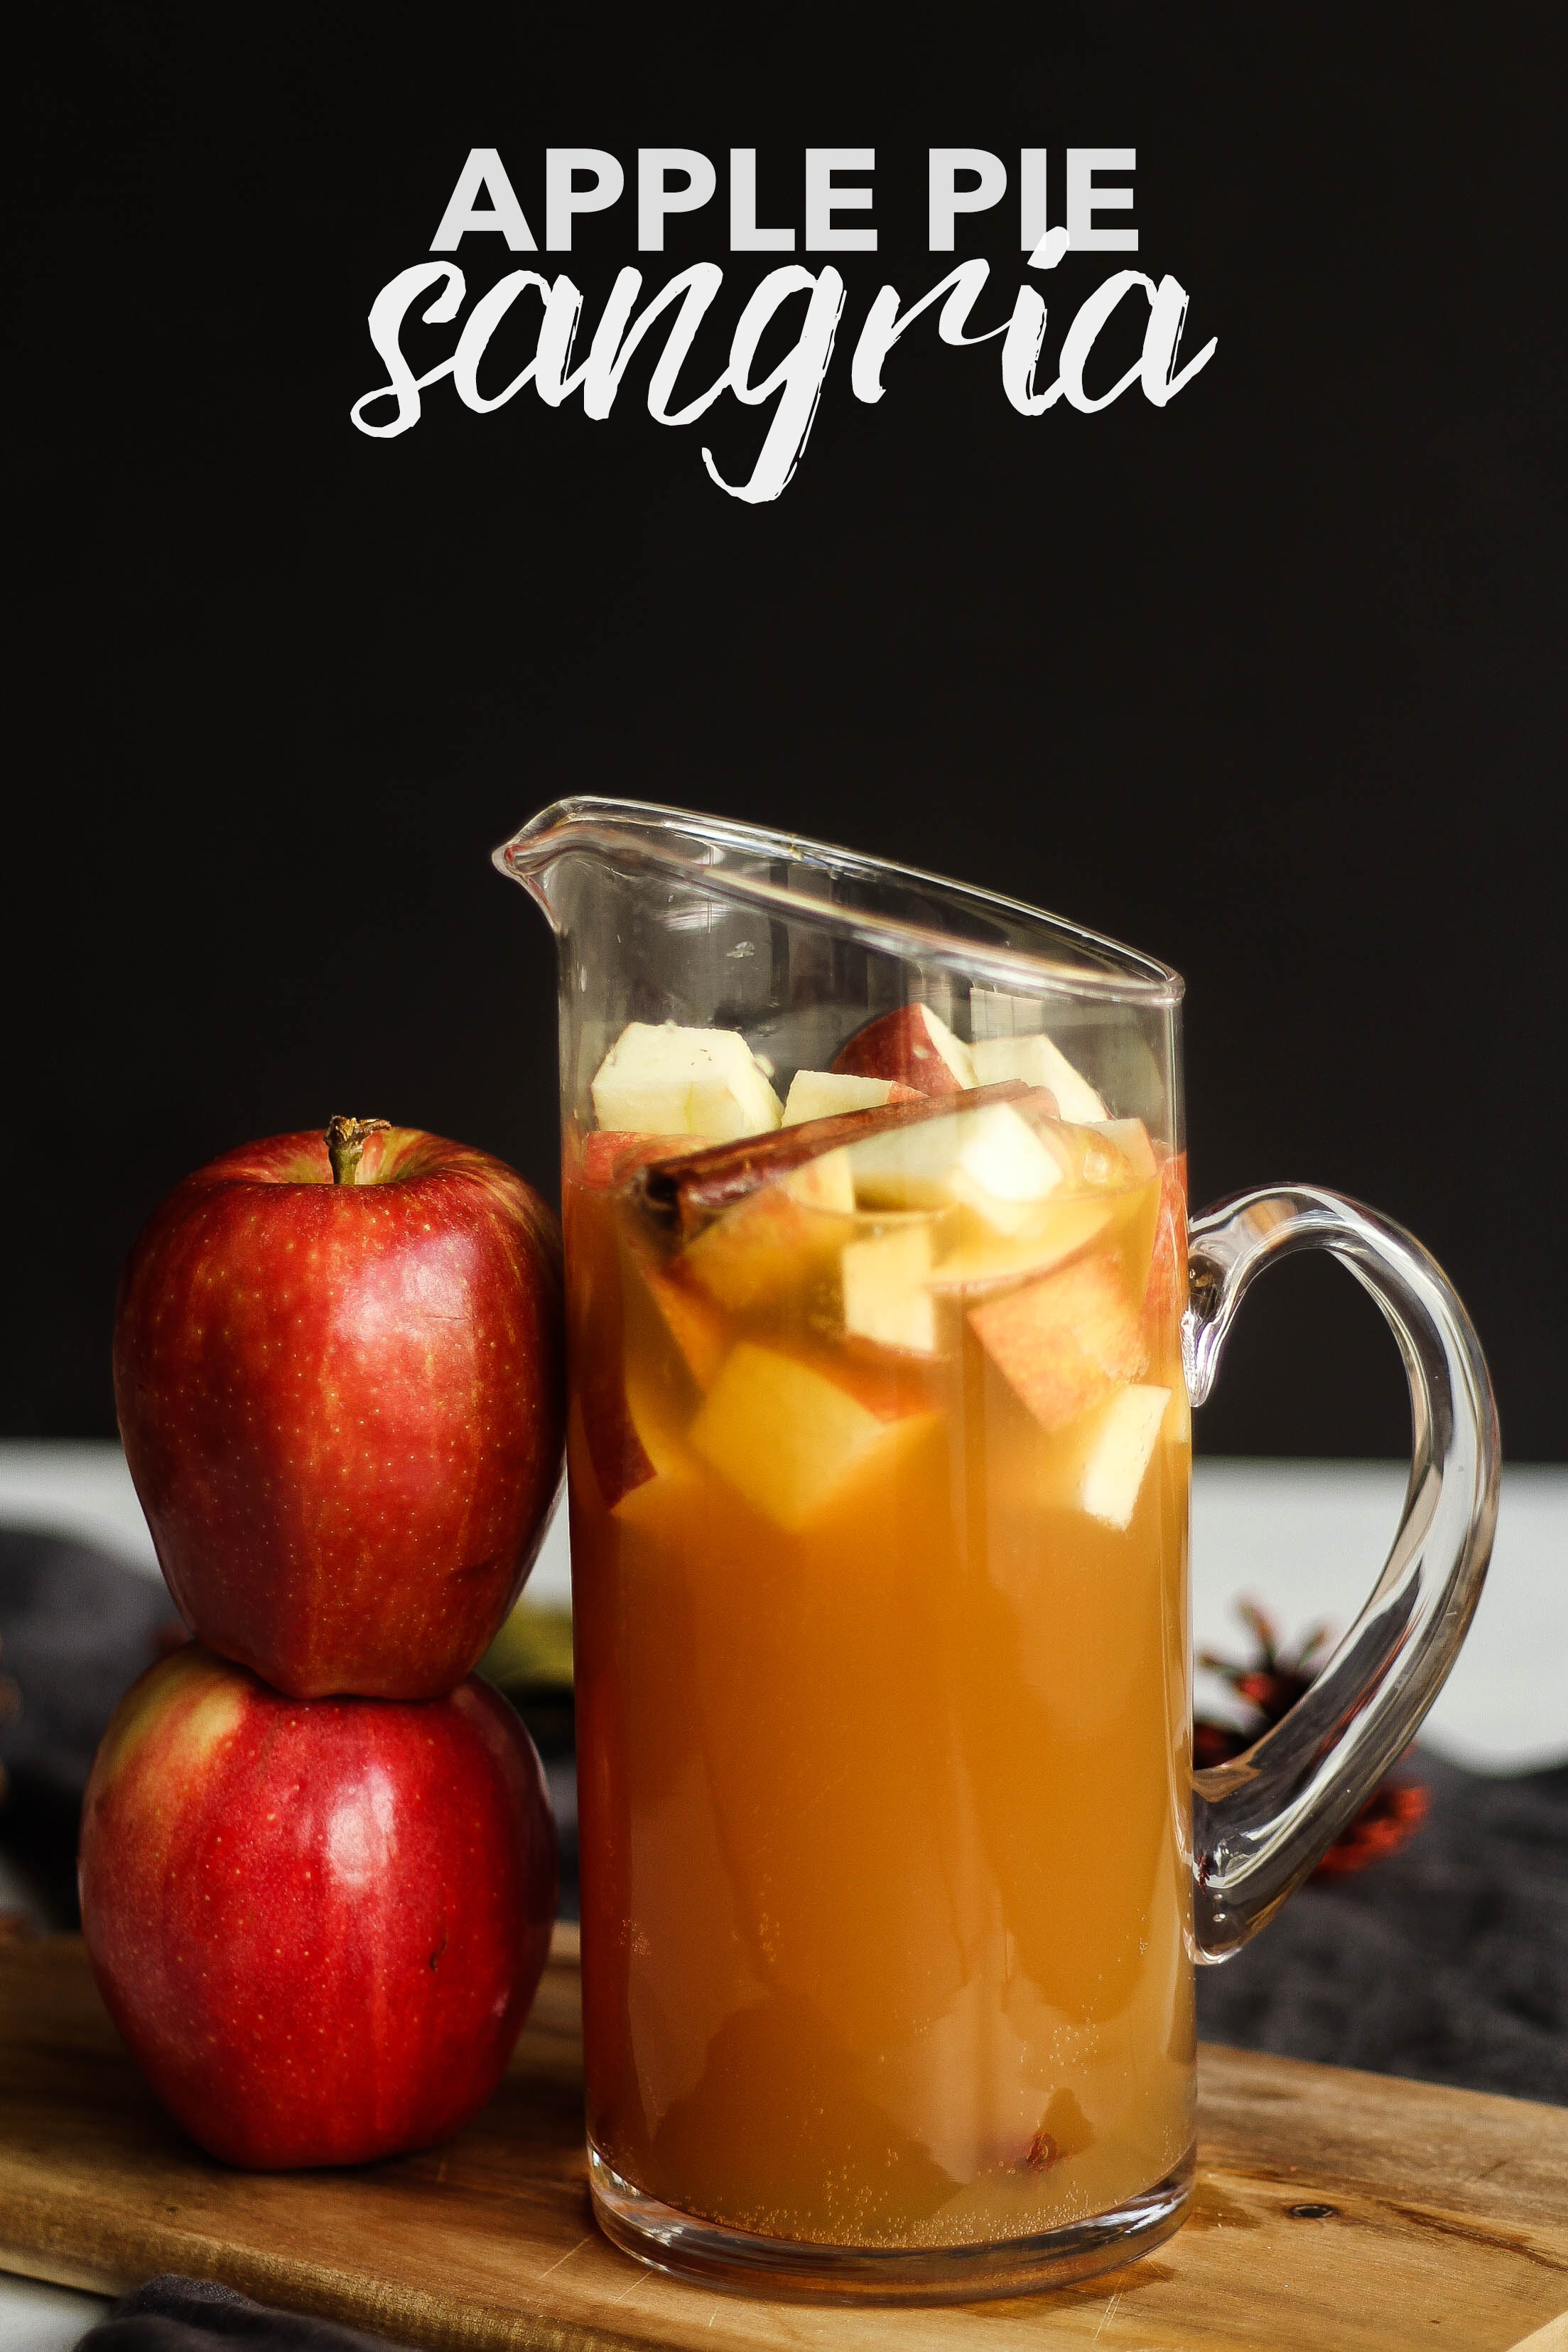 151 Apple Pie Shot / Hot Apple Pie Shot with Everclear, Warm Apple Pie / This stuff is so smooth ...